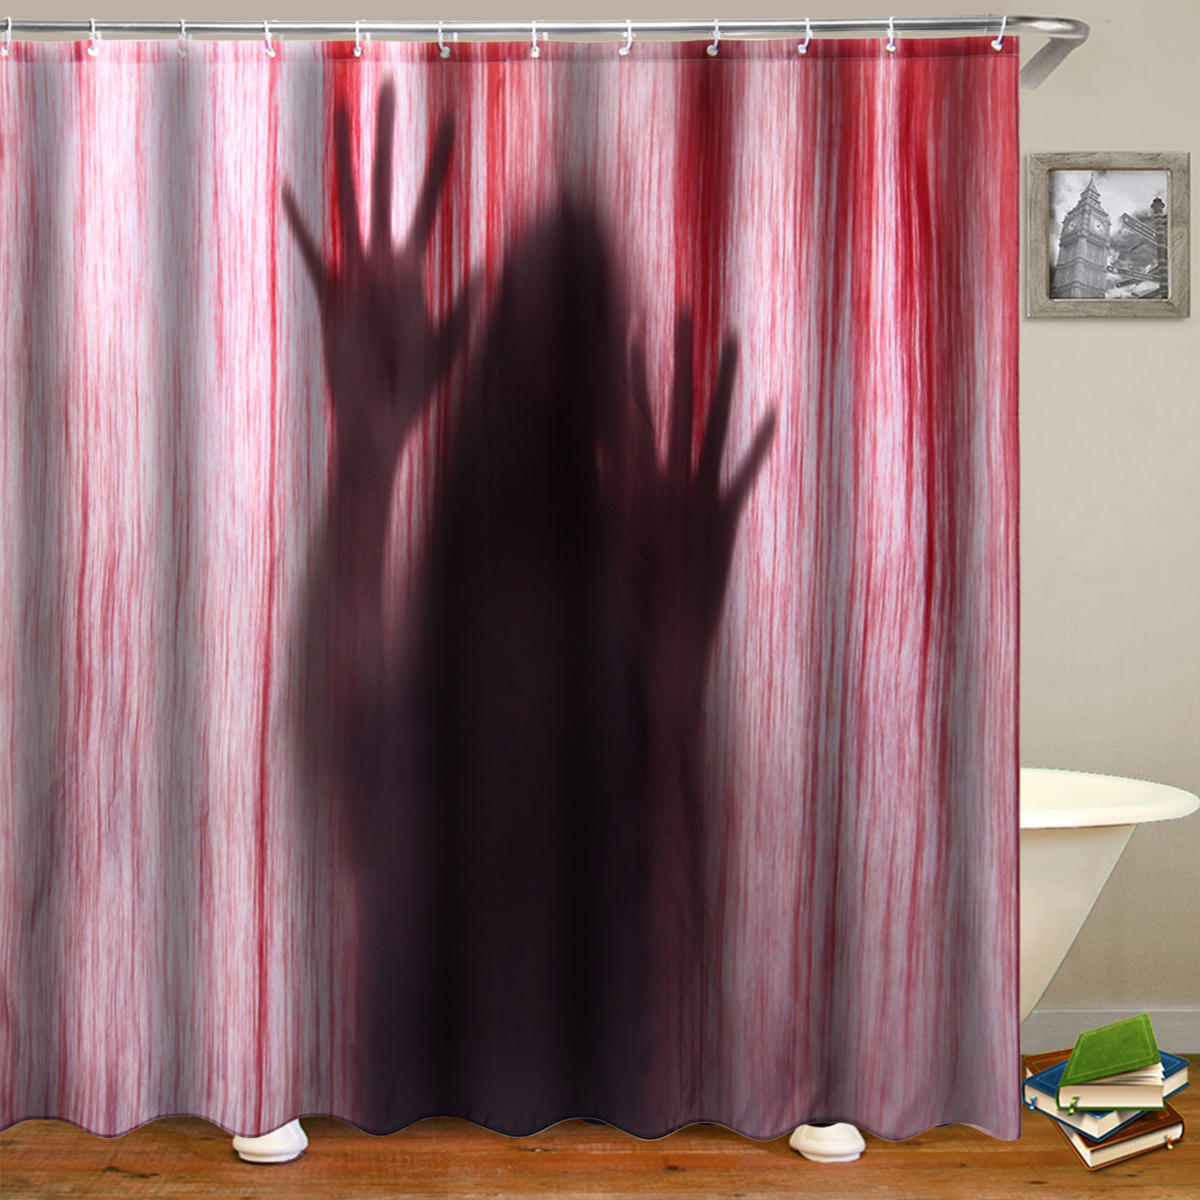 Bathroom Shower Curtain 71 Halloween Bloody Hands 3d Printed Bathroom Shower Curtain Decor With 12 Hooks